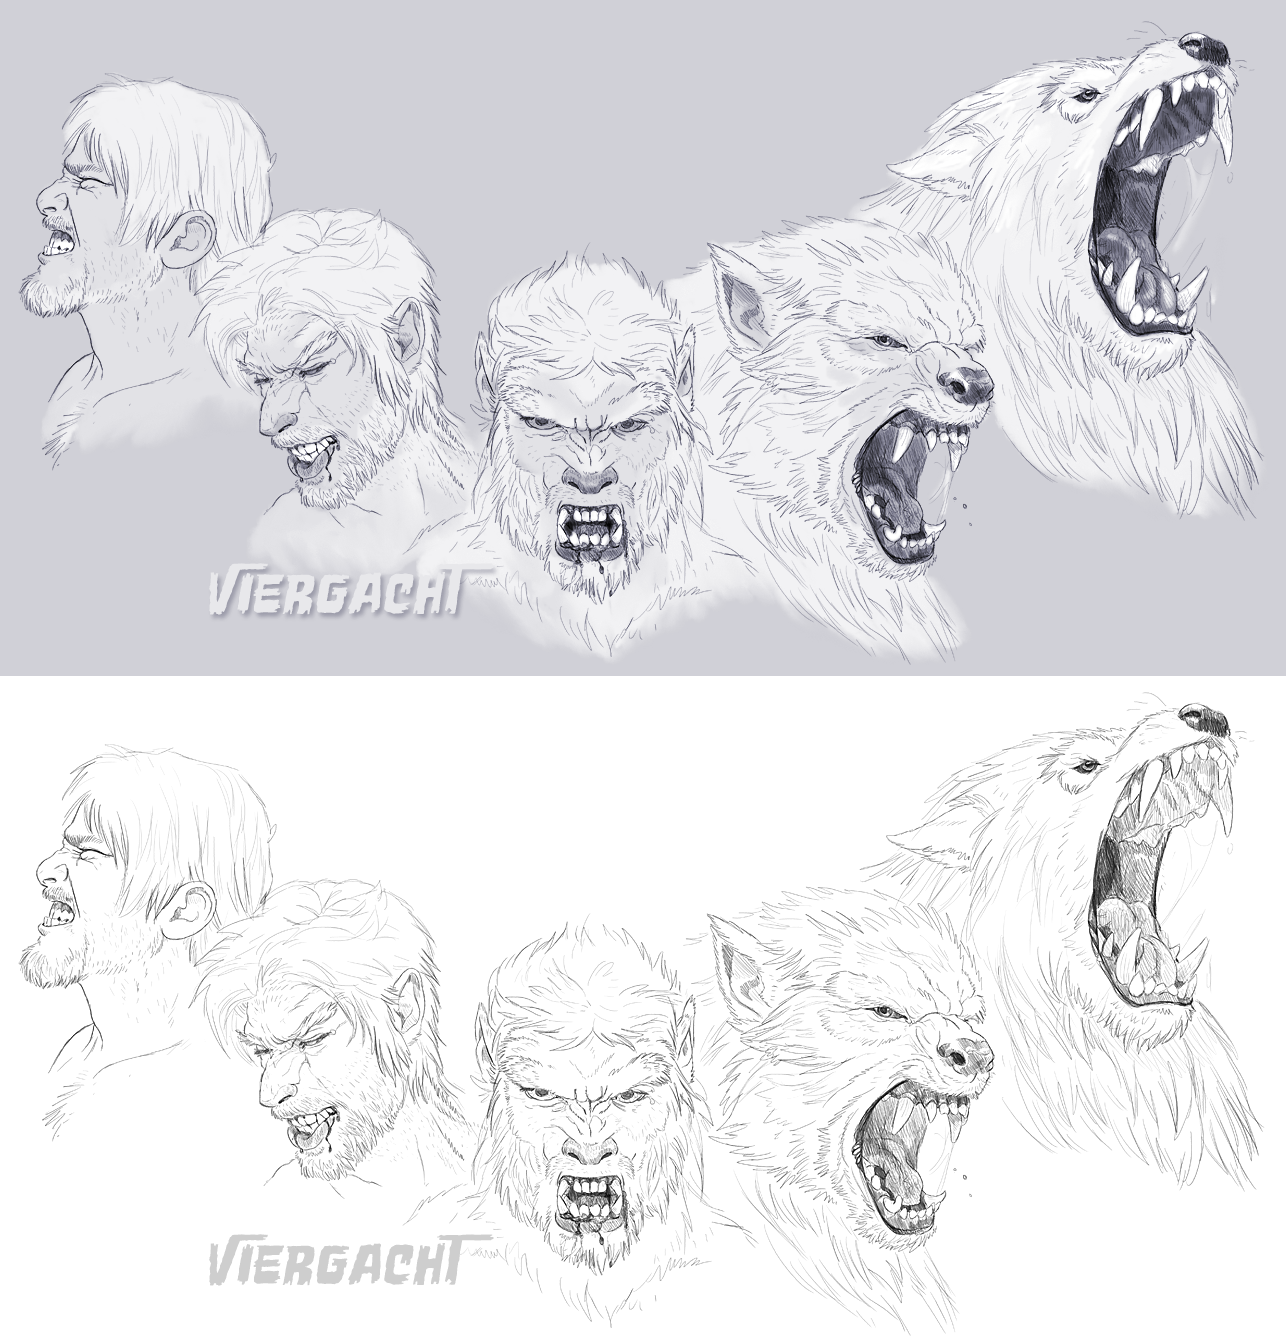 Werewolf Sequence 2 by Viergacht